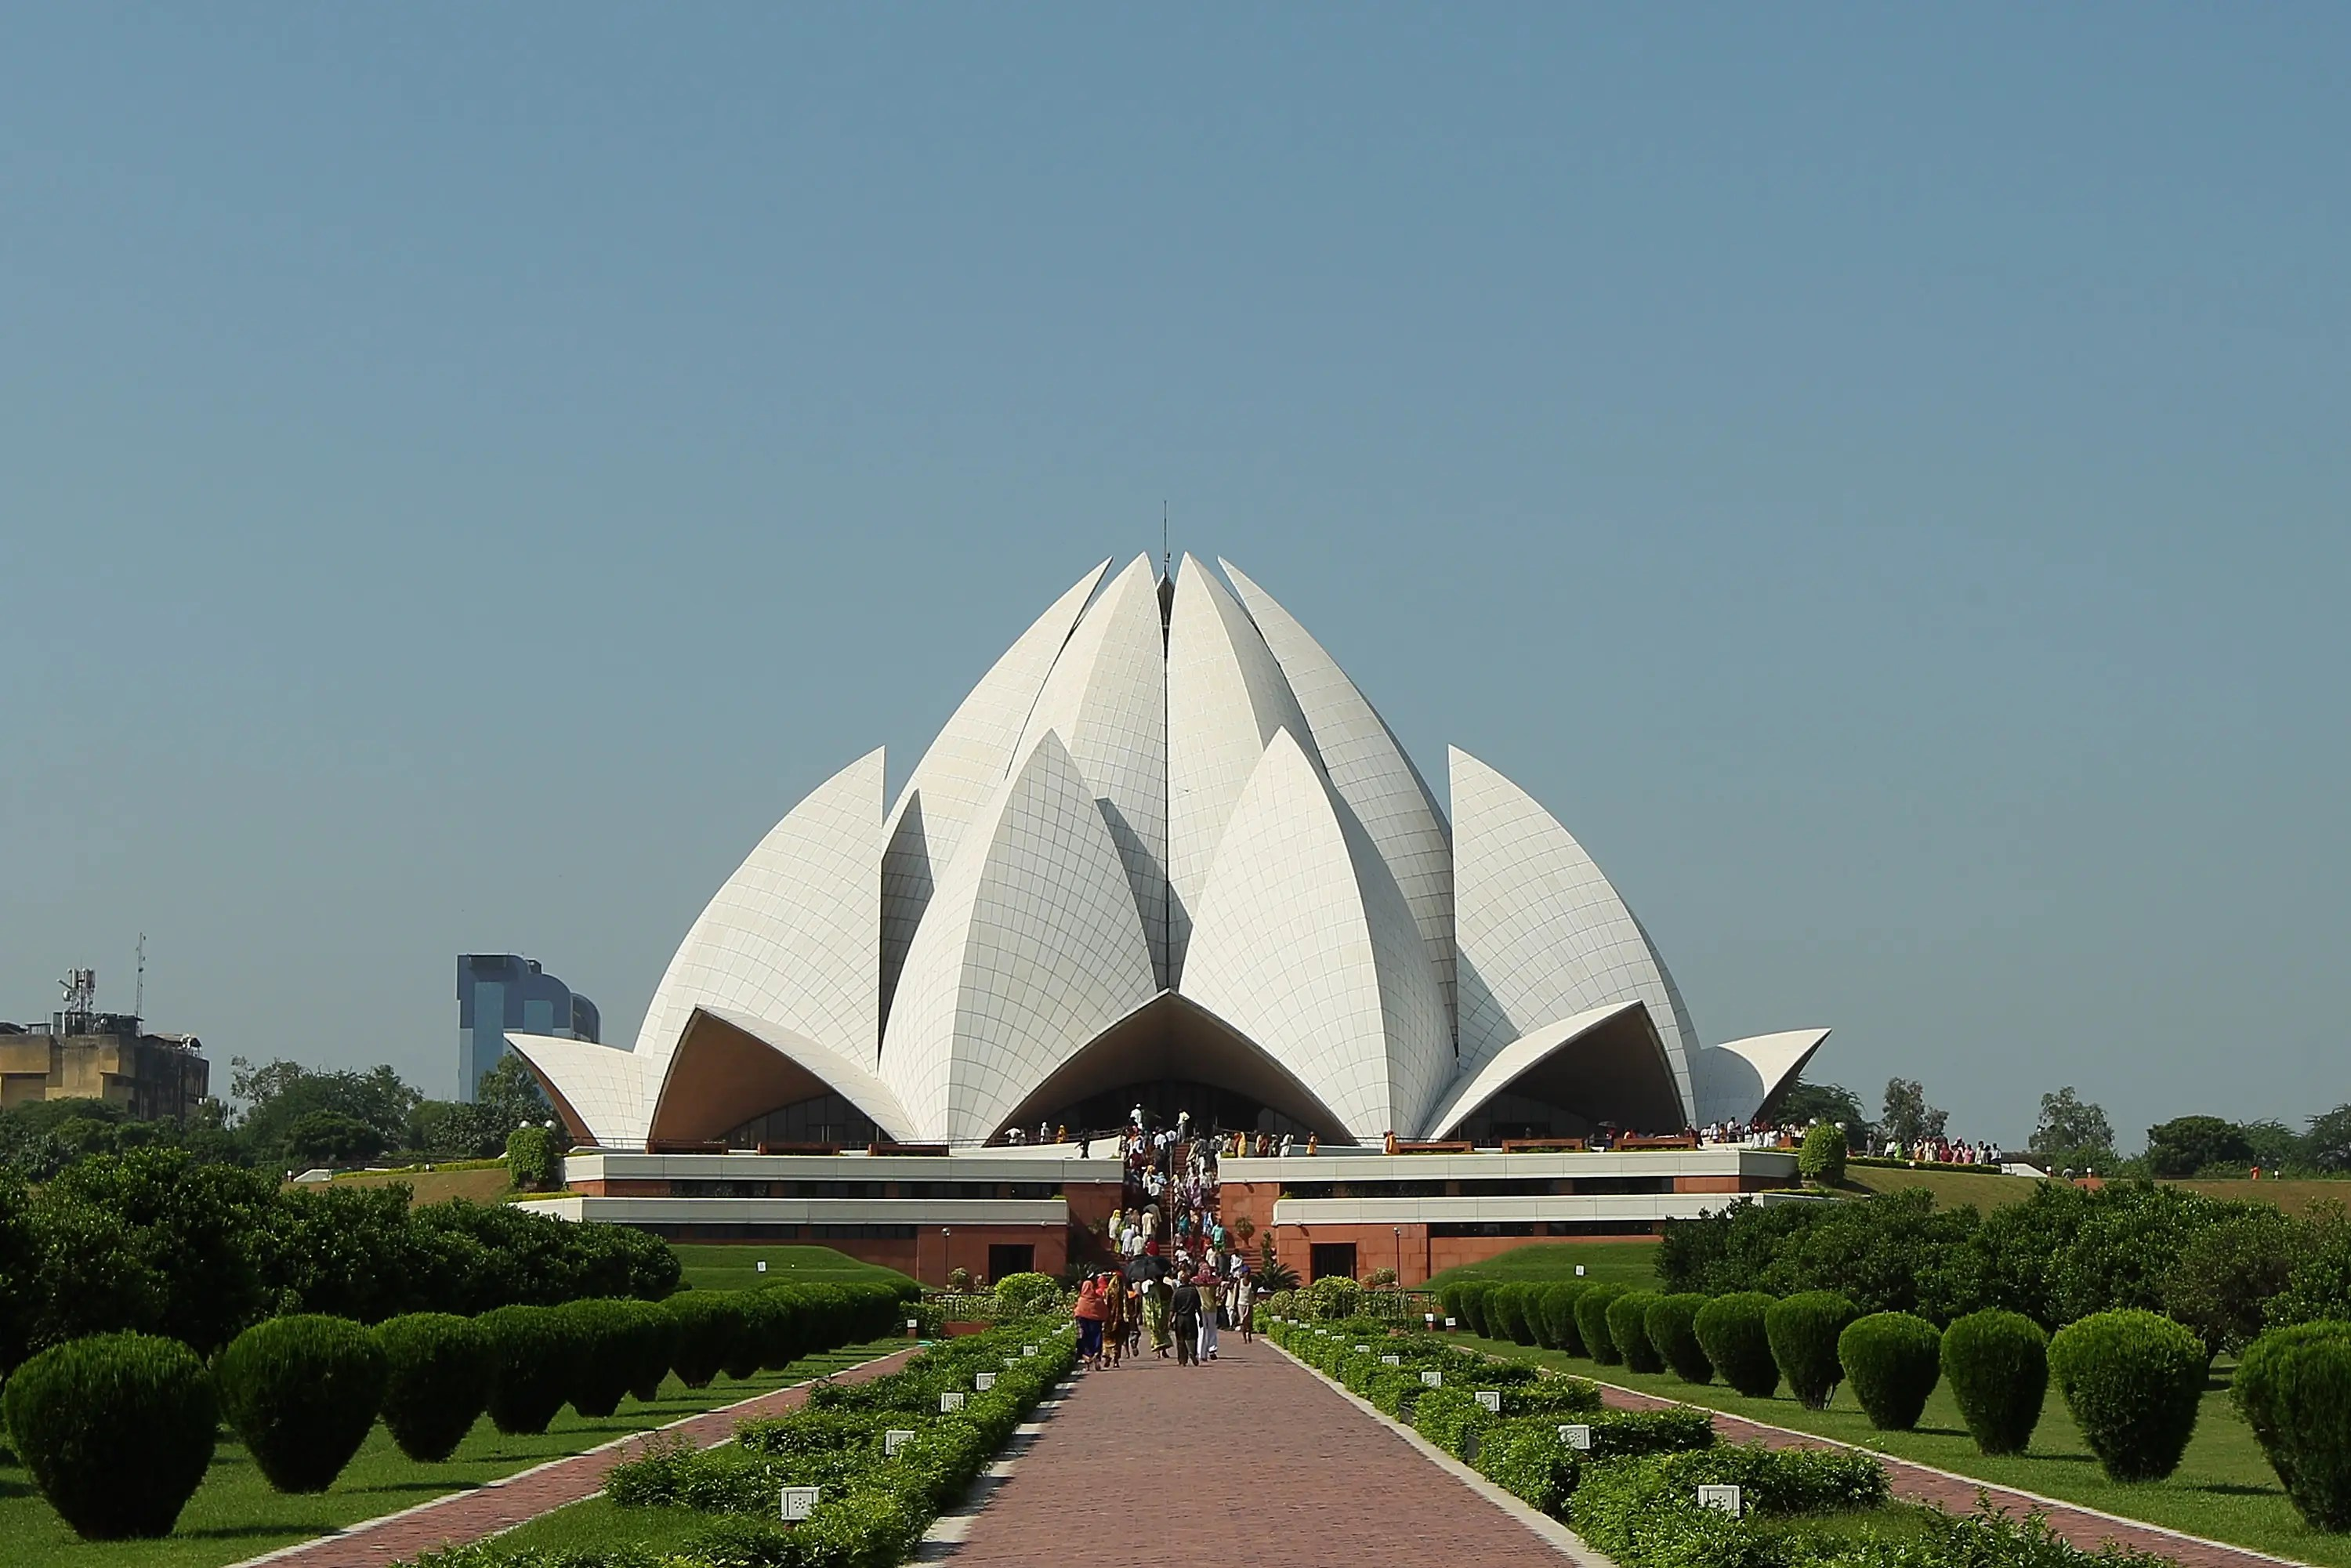 19. The Lotus Temple in Dehli, India draws hordes of tourist with its striking modern design.